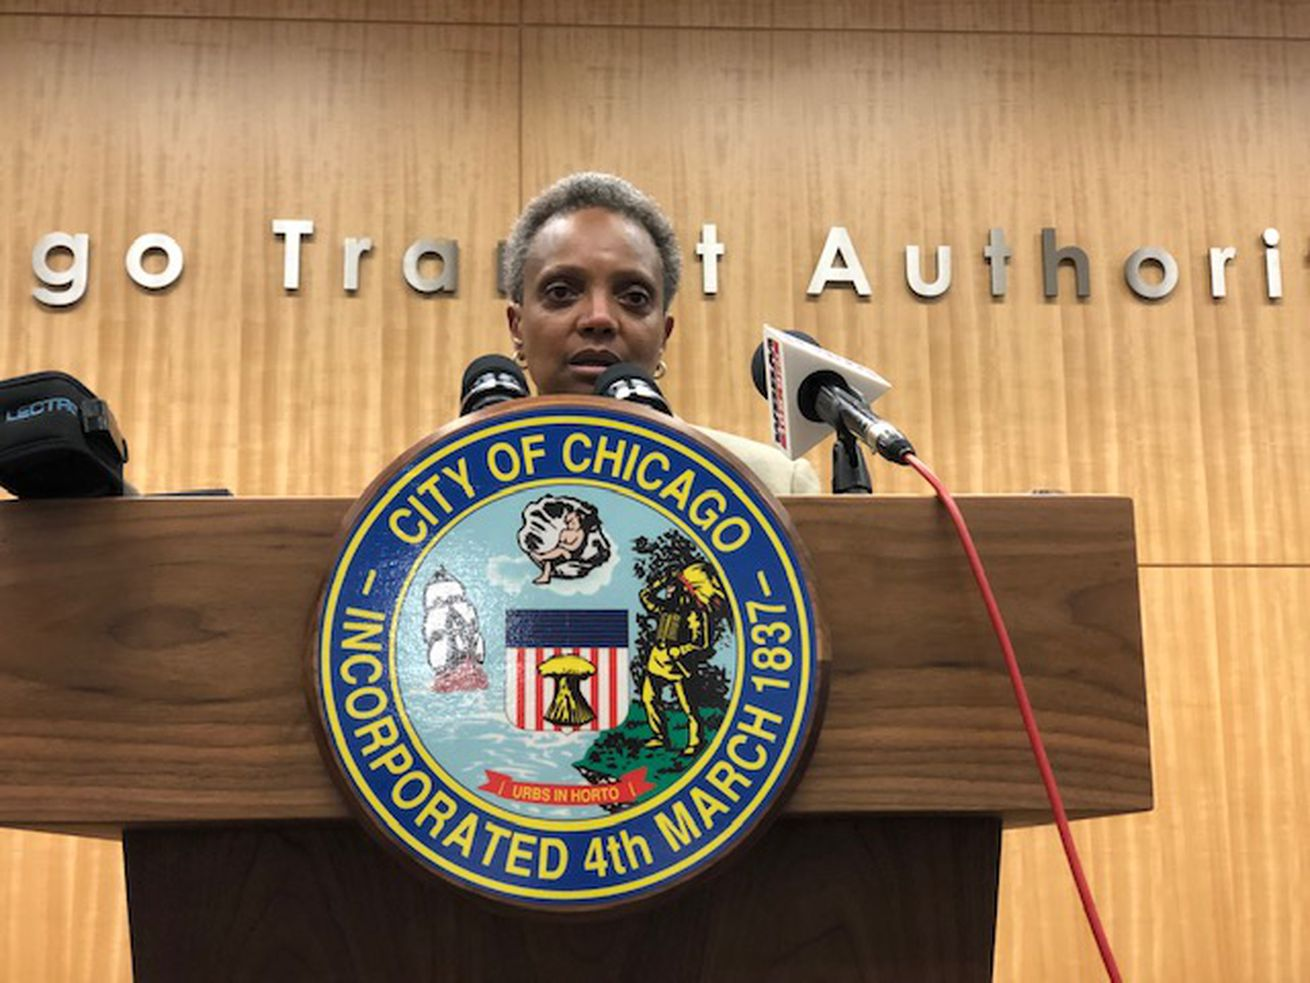 Mayor Lori Lightfoot answers questions from reporters at CTA headquarters after a celebratory news conference on the state's $45 billion capital plan.